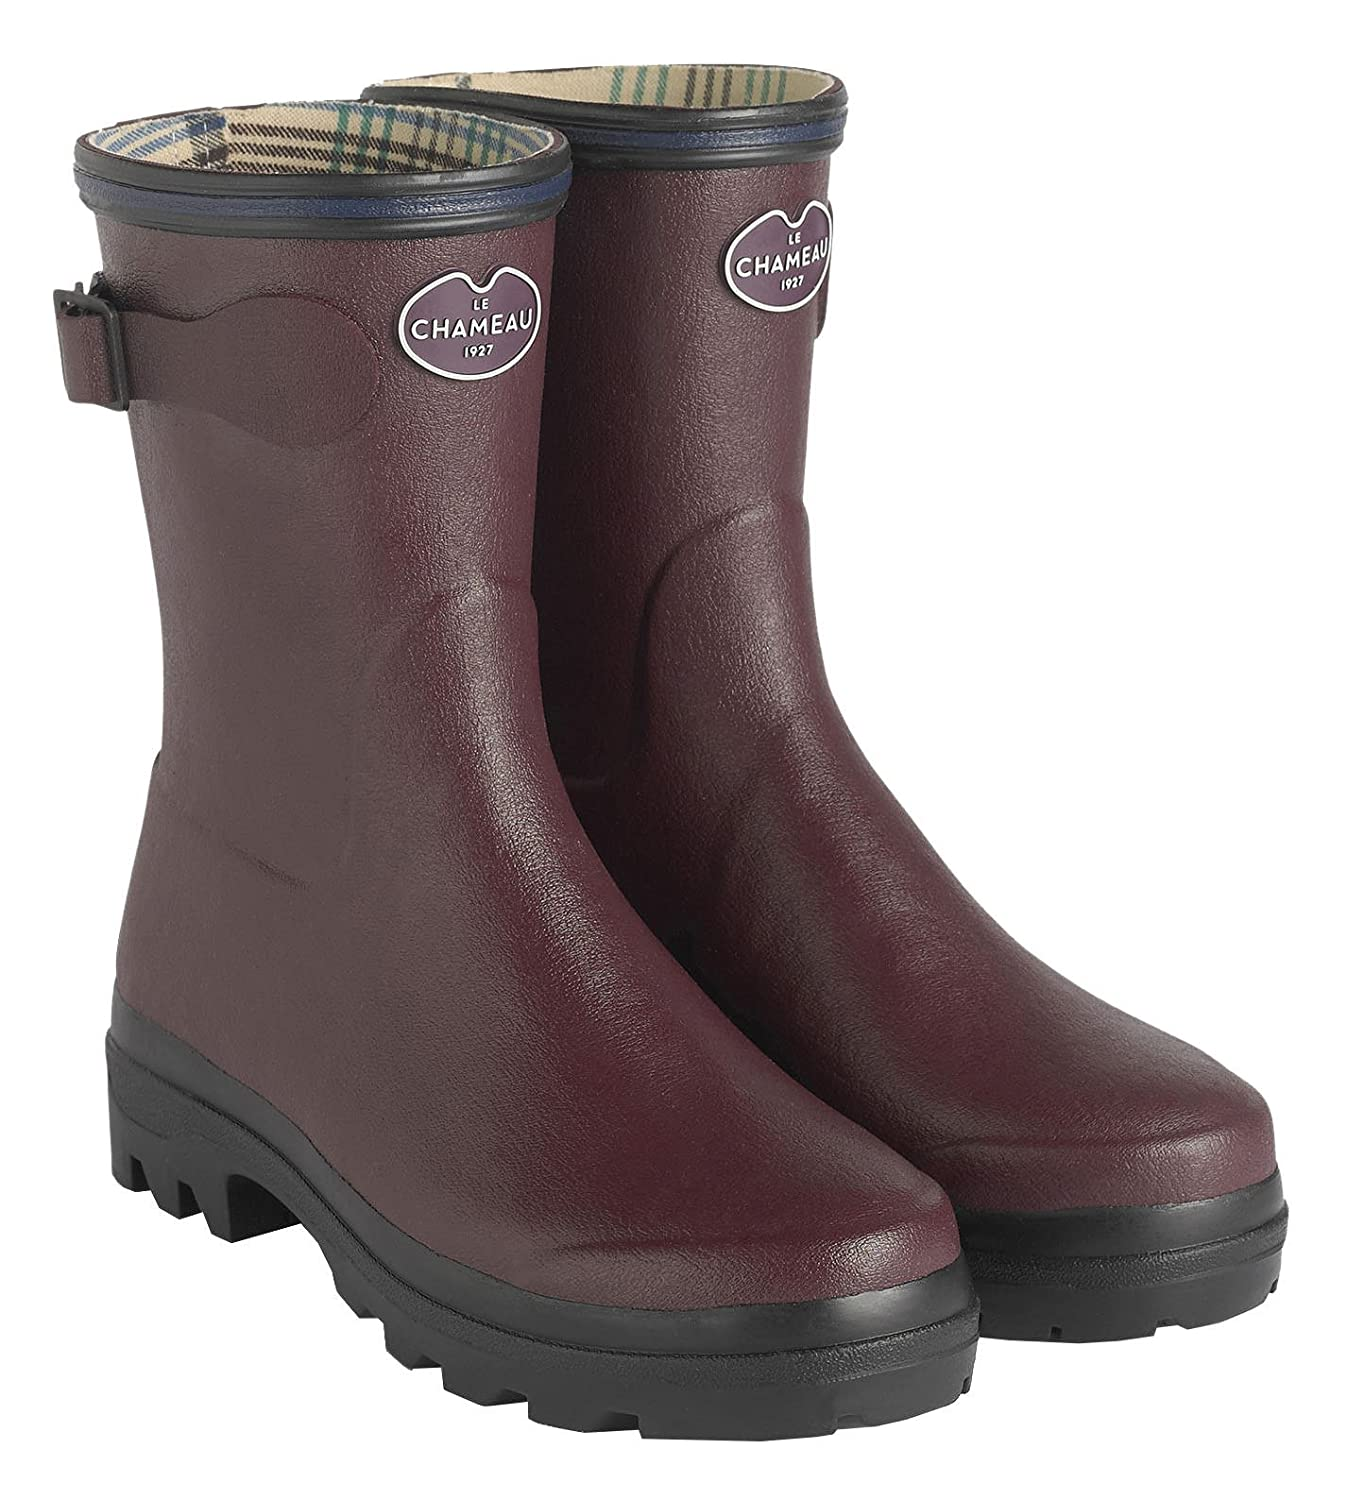 Parent LE CHAMEAU 1927 Womens Giverny Jersey Lined Low Boot 4579 Cherry 1974-4579/_Cherry